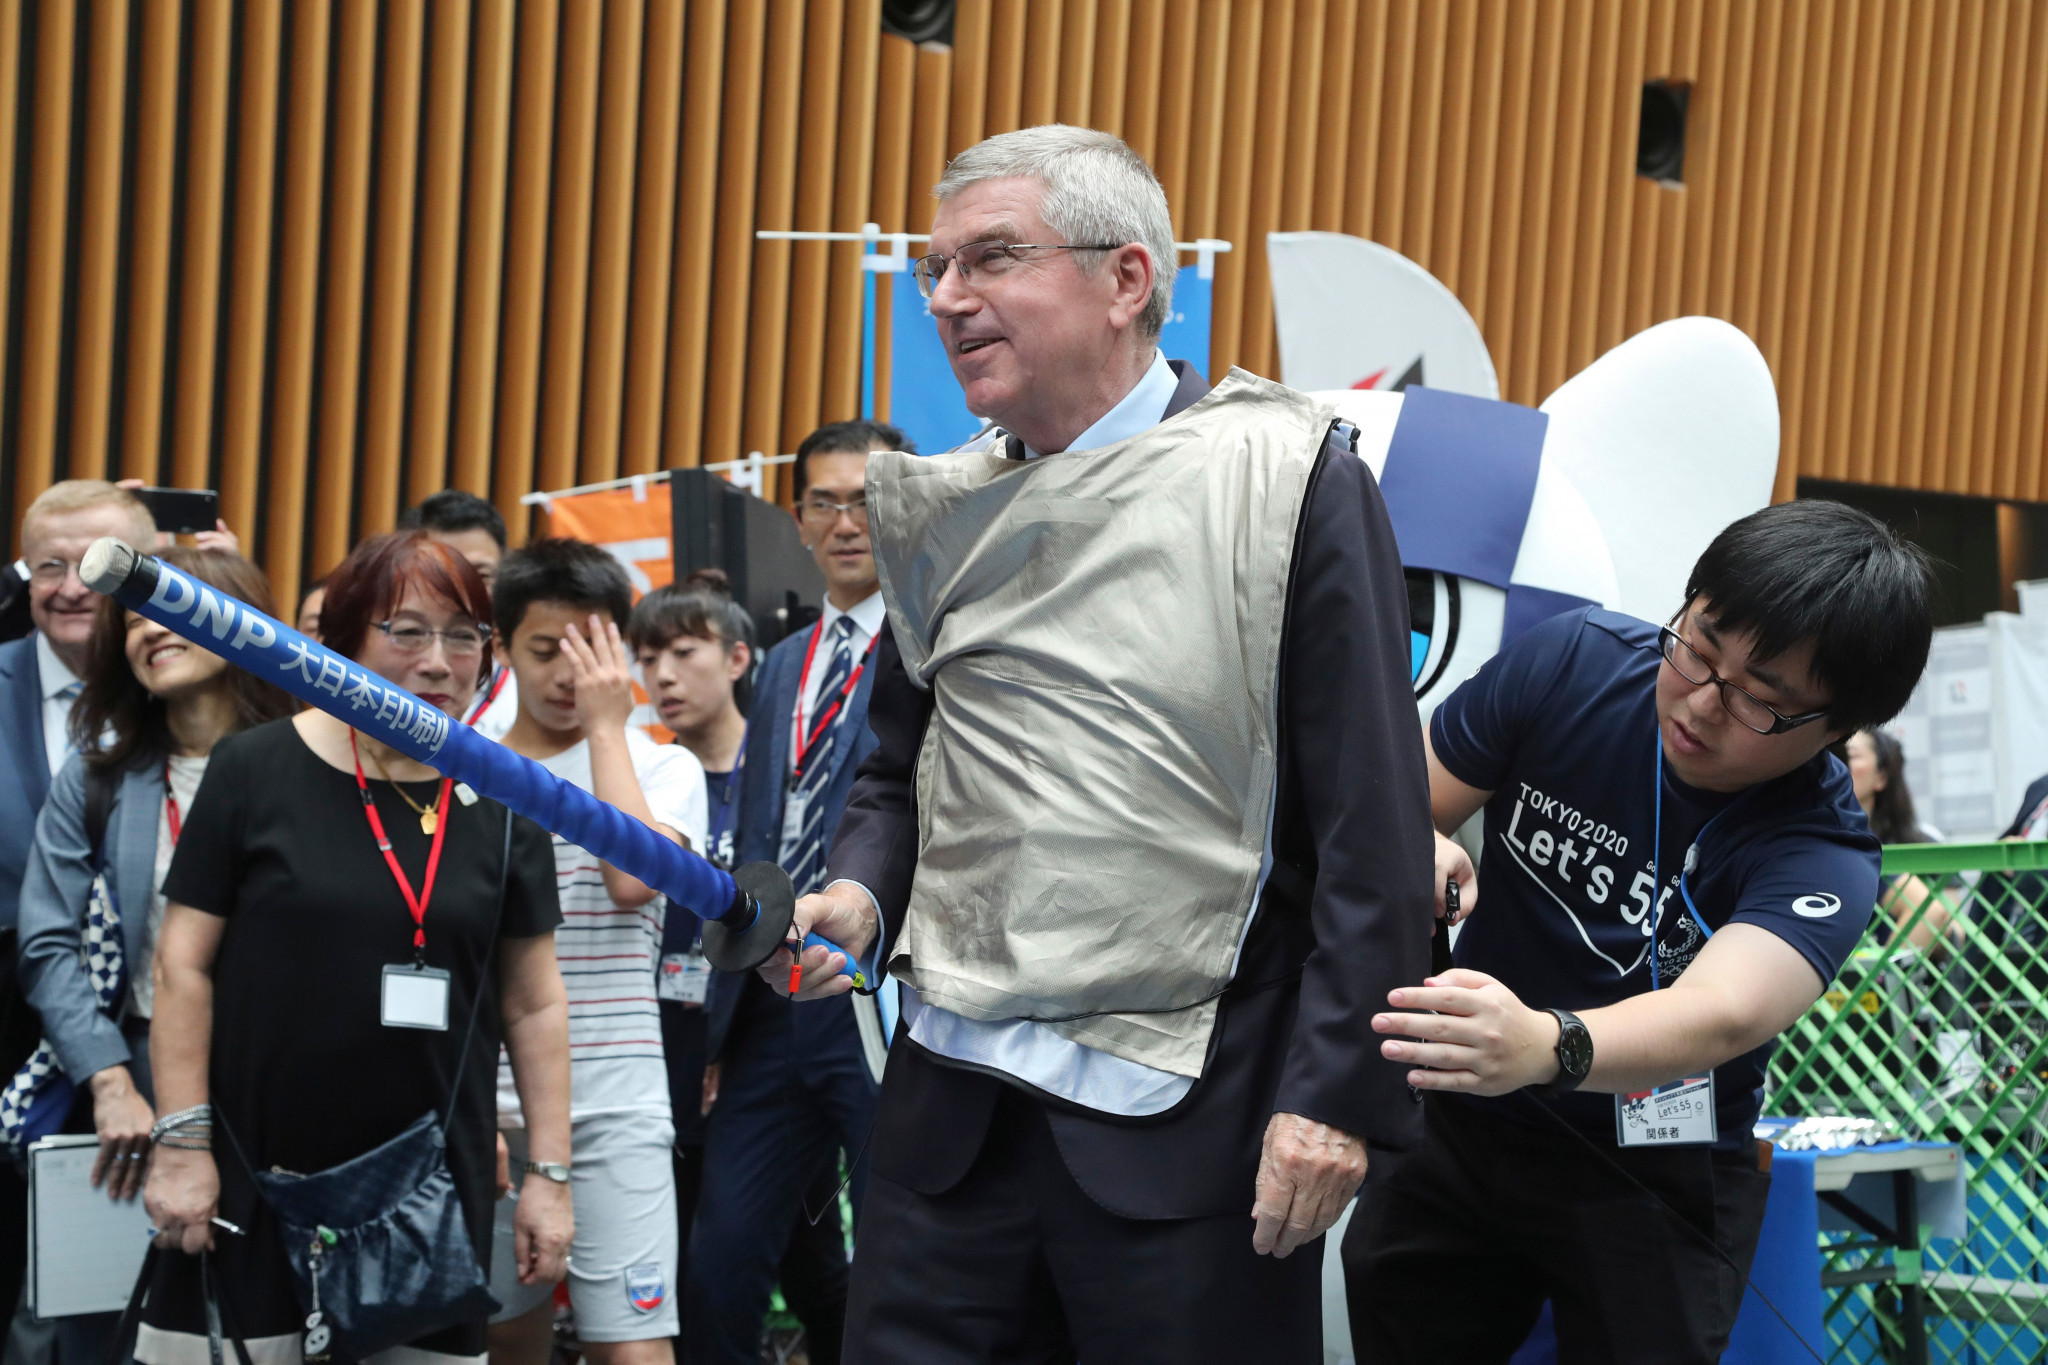 IOC President Thomas Bach is a former athlete who won Olympic fencing gold at Montreal 1976 ©Getty Images